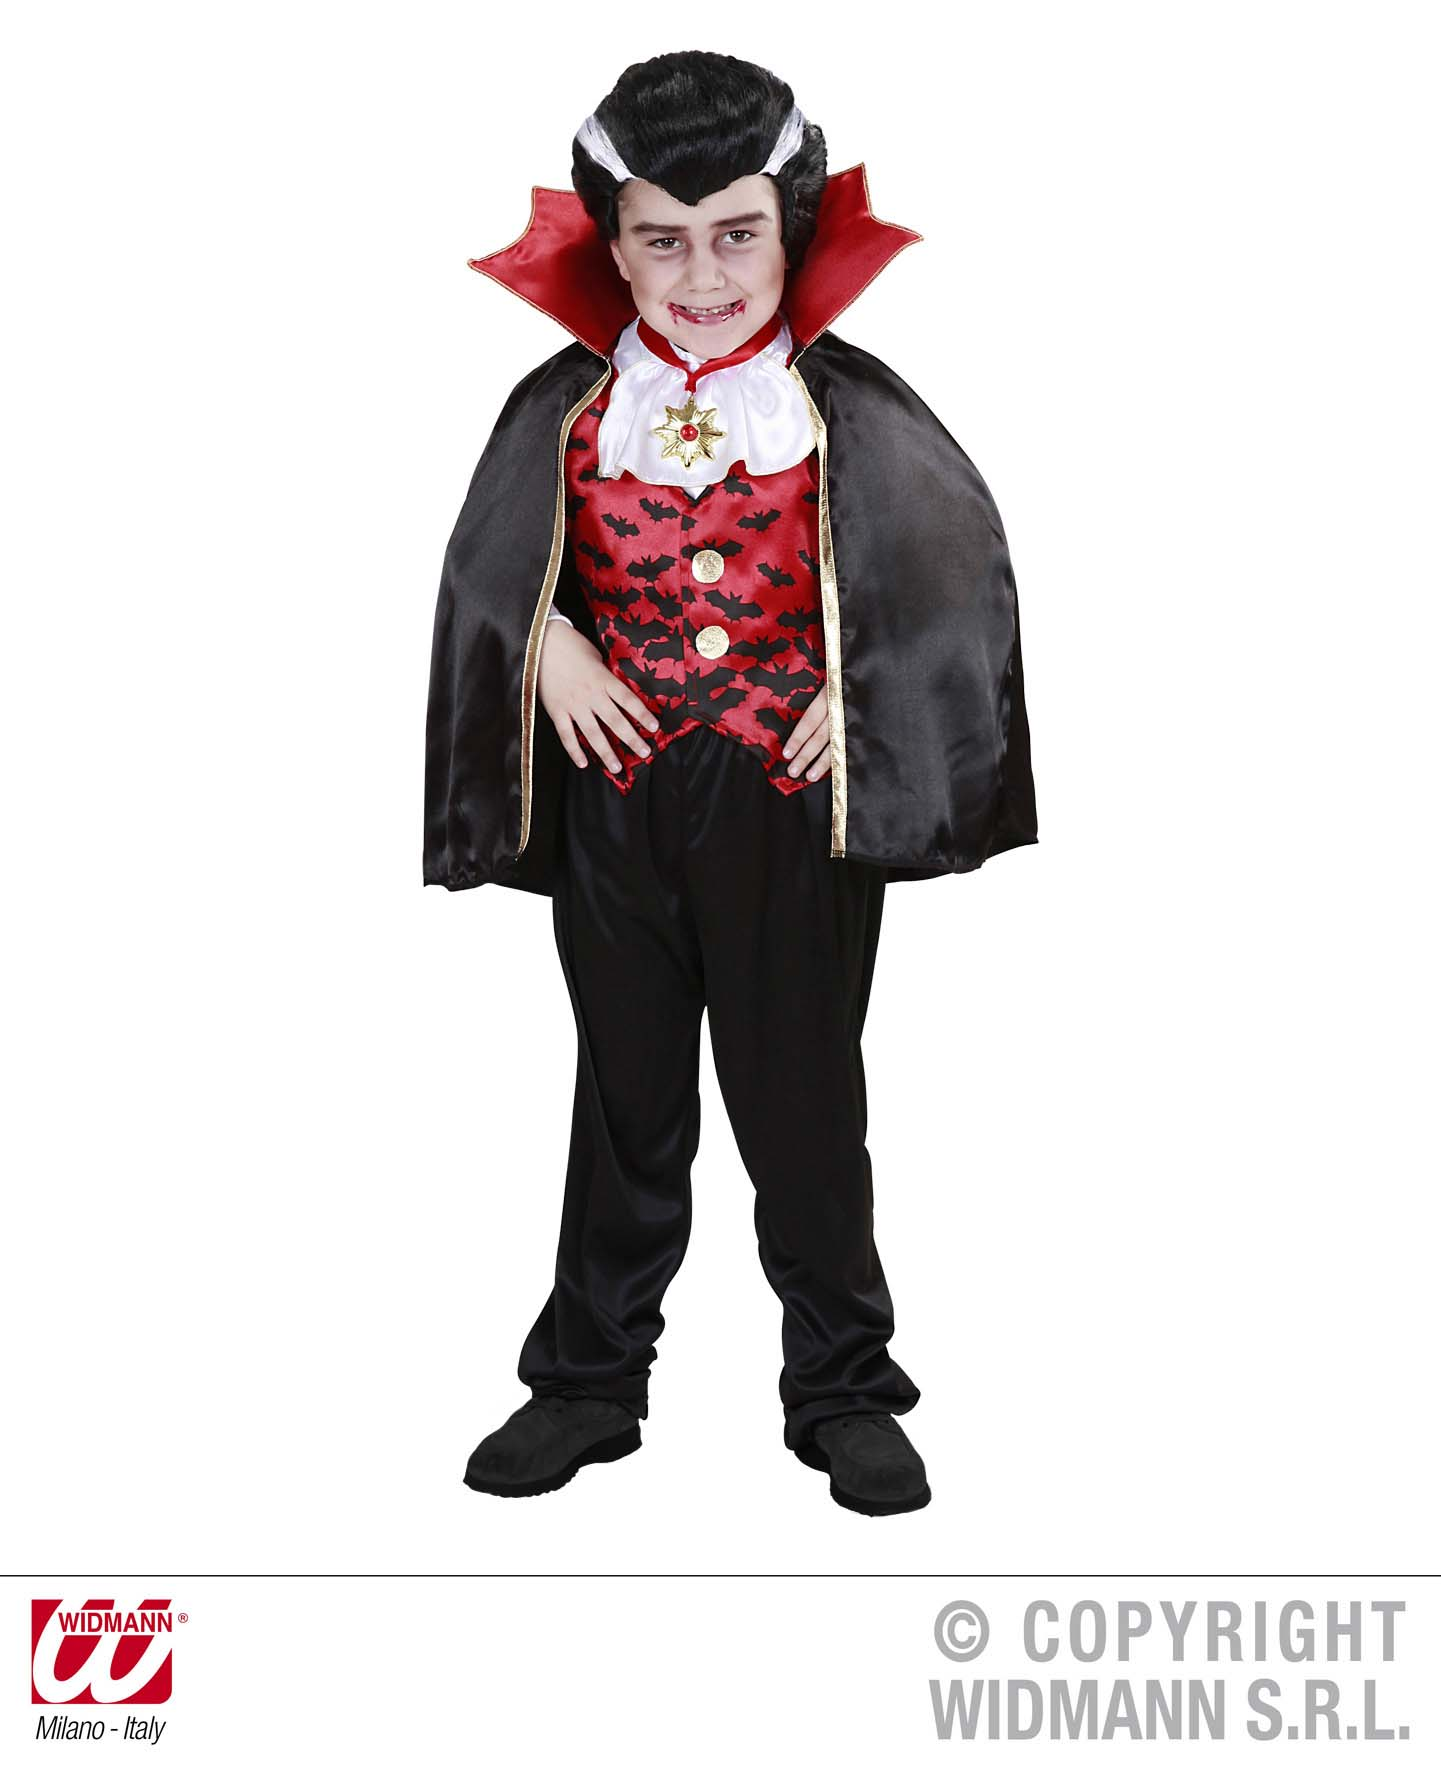 Halloween Costume 4 5.Details About Childrens Vampire Fancy Dress Costume Dracula Halloween Outfit 4 5 Yrs